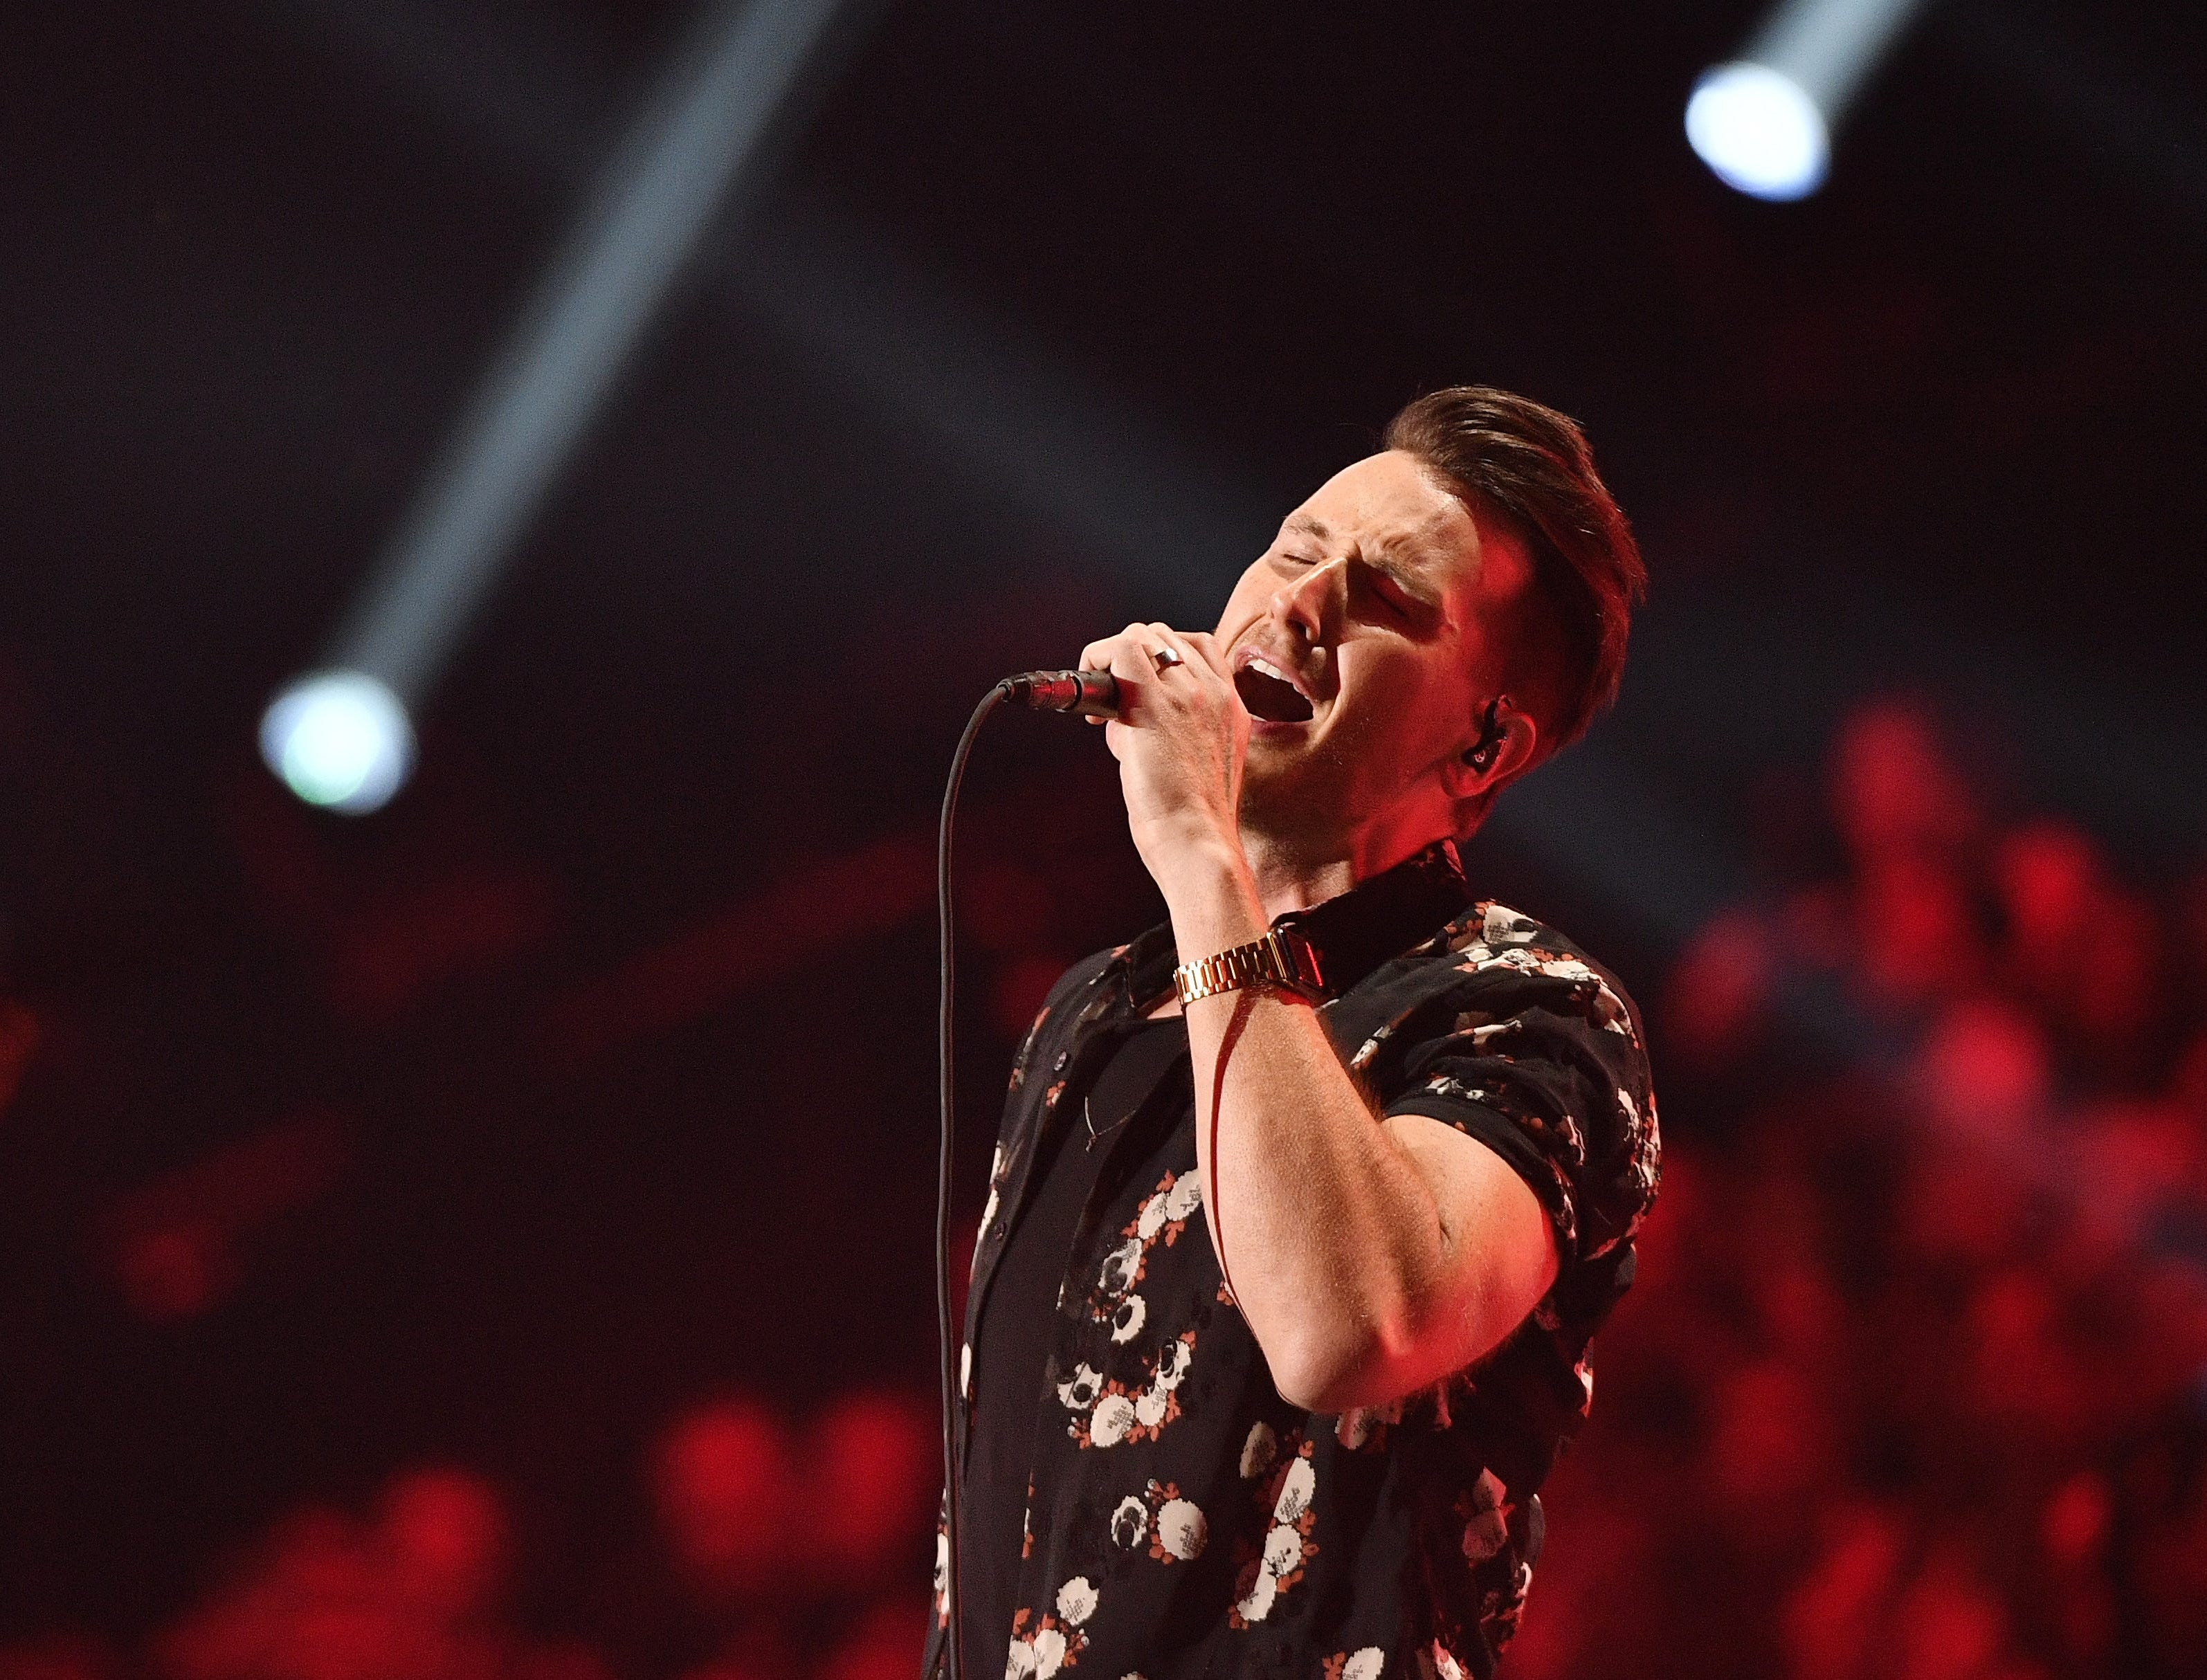 Russell Dickerson is scheduled to play the Chevy Riverfront Stage at CMA Fest 2019.